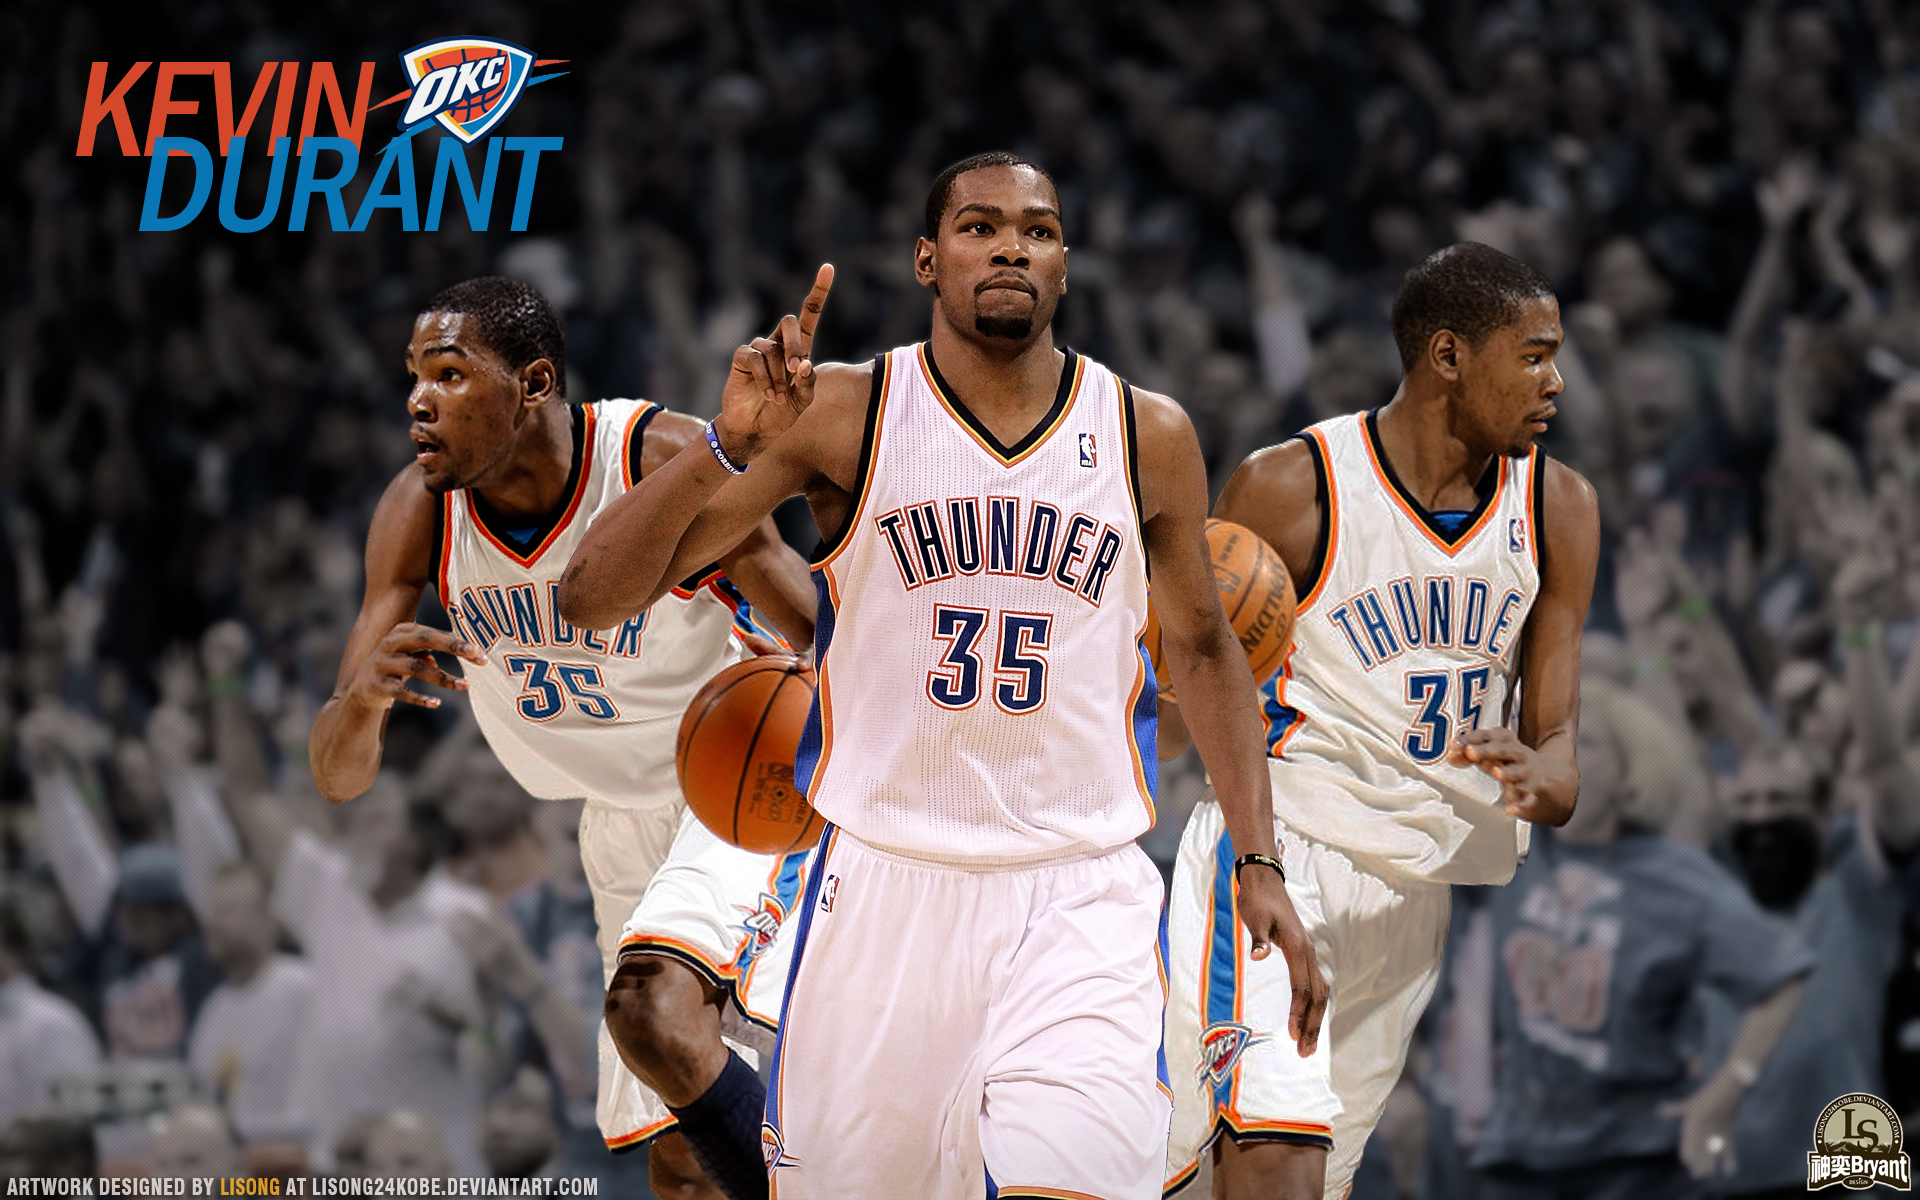 Kevin Durant Quote Kevin Durant Wallpaper Quotes Pc Kevin Durant Wallpaper Quotes